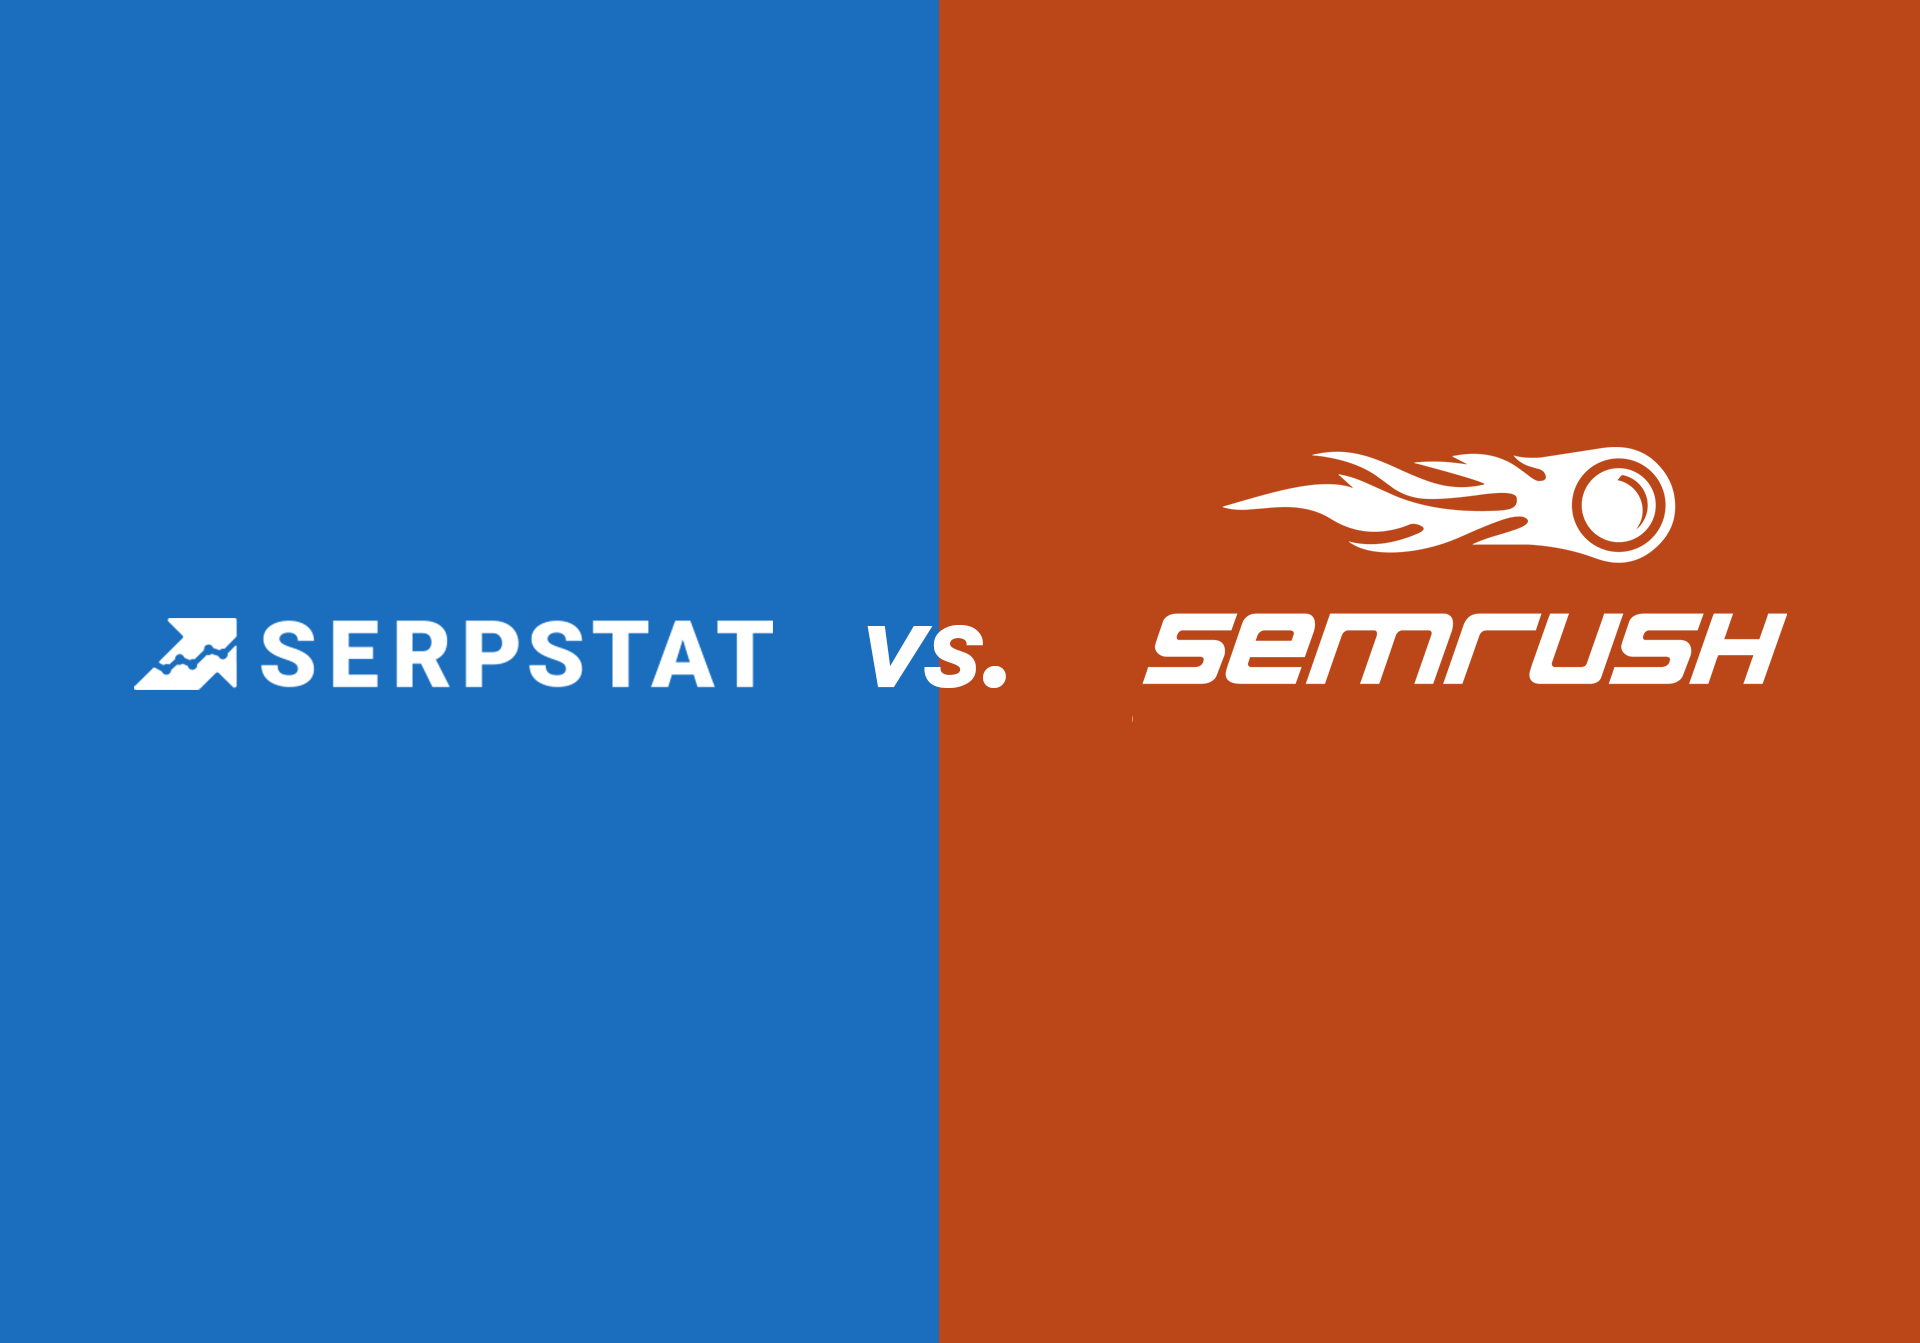 Seo Software Semrush Discount Code 2020